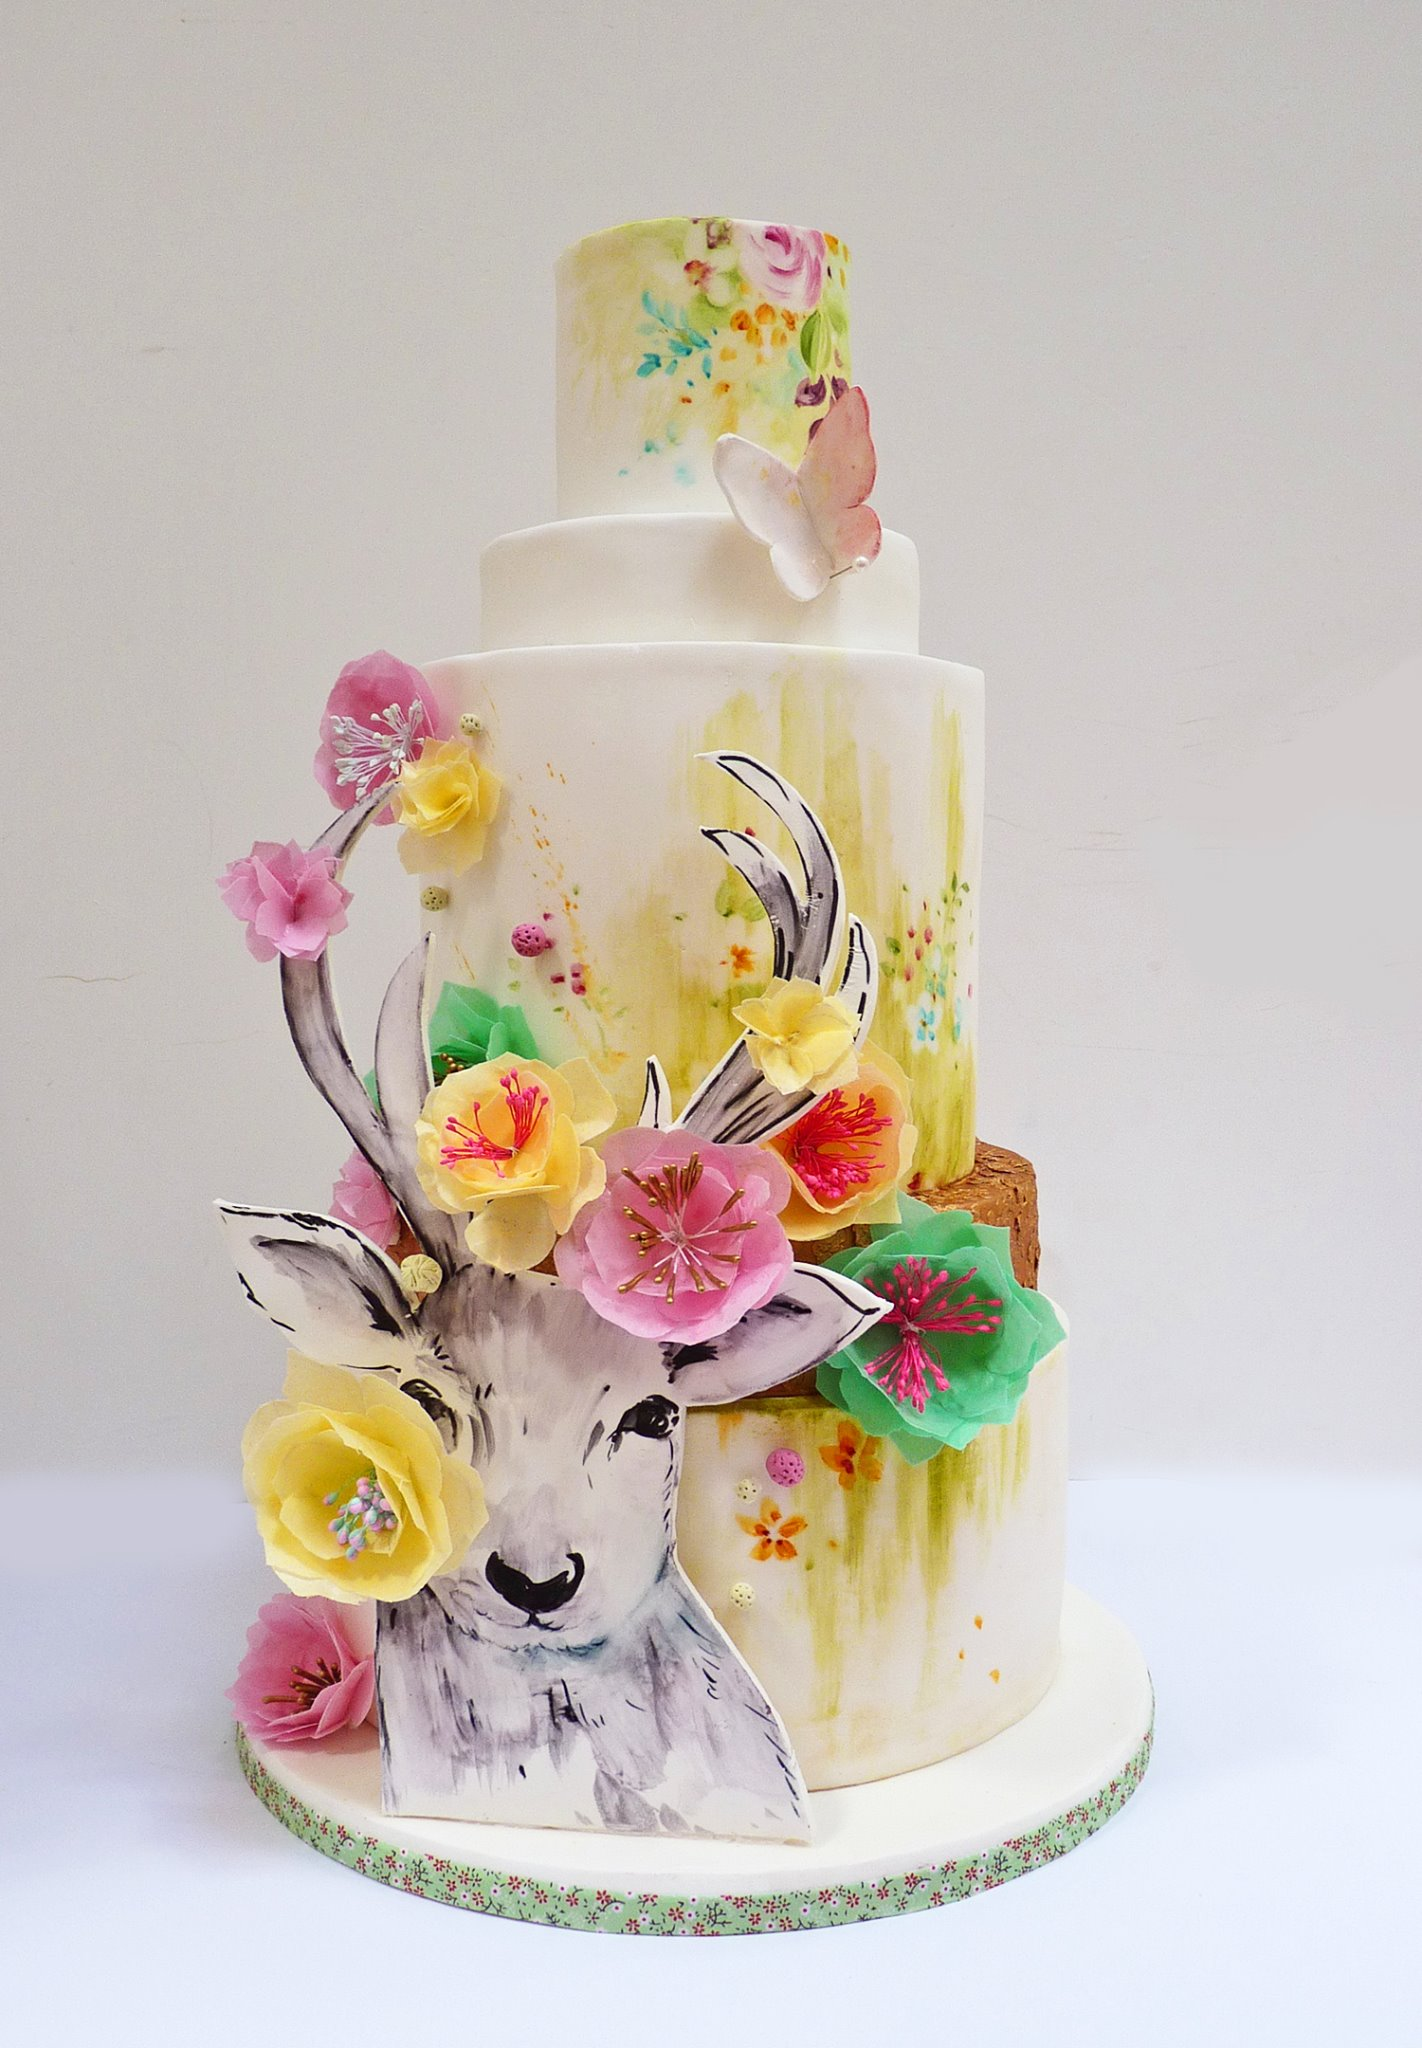 Hand Painted Cake with 3-D Elements